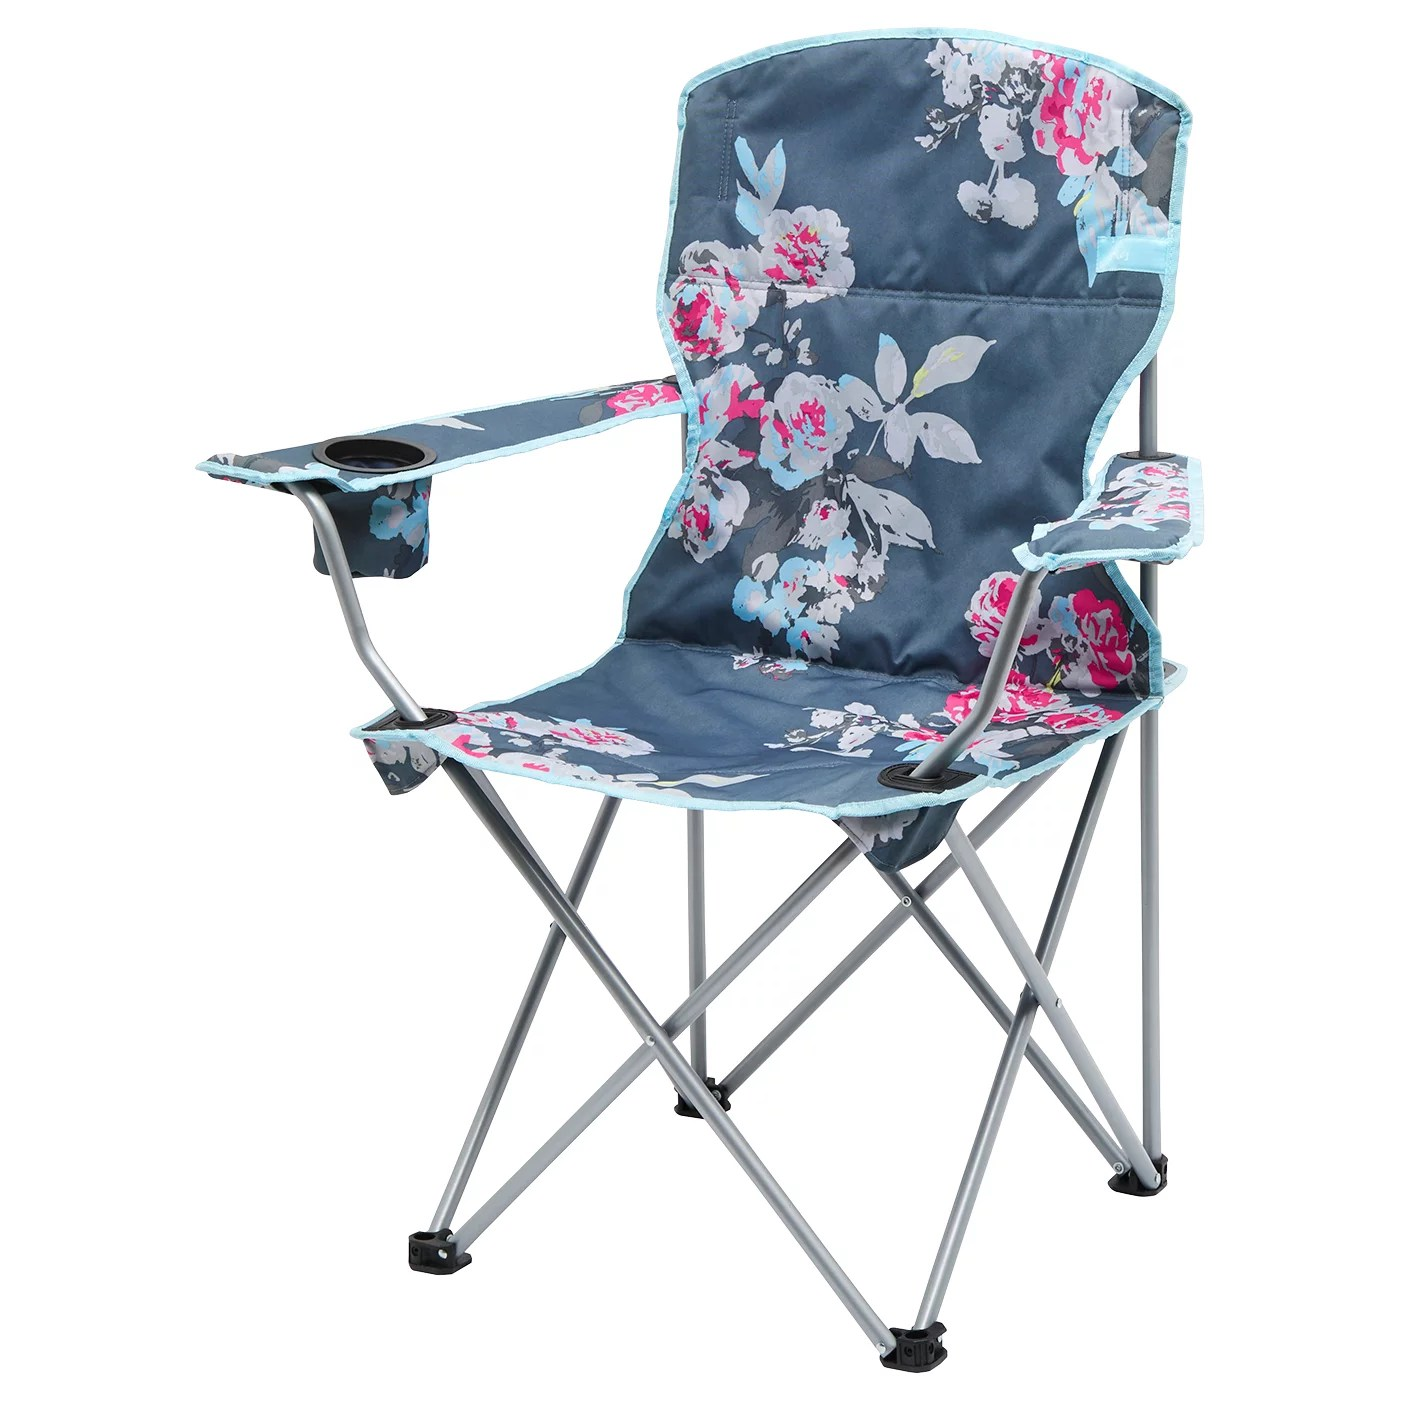 Picnic Chairs Joules Floral Picnic Chair Grey At John Lewis Partners